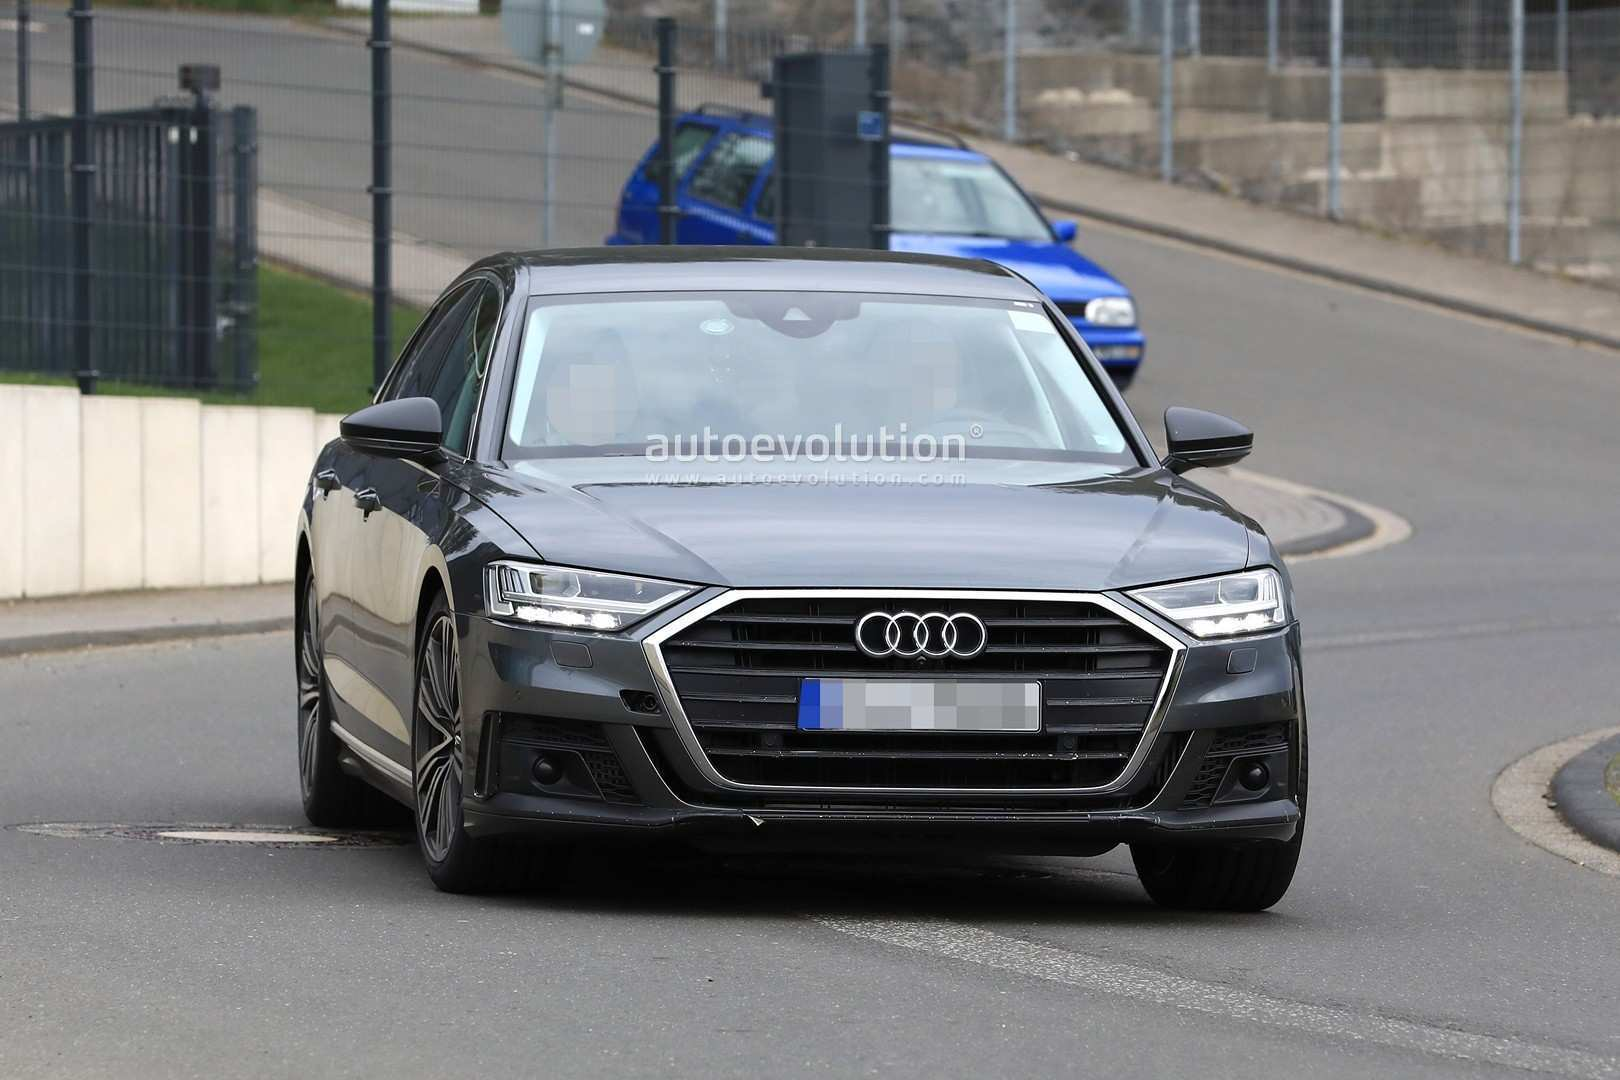 44 New 2020 Audi Spesification by 2020 Audi